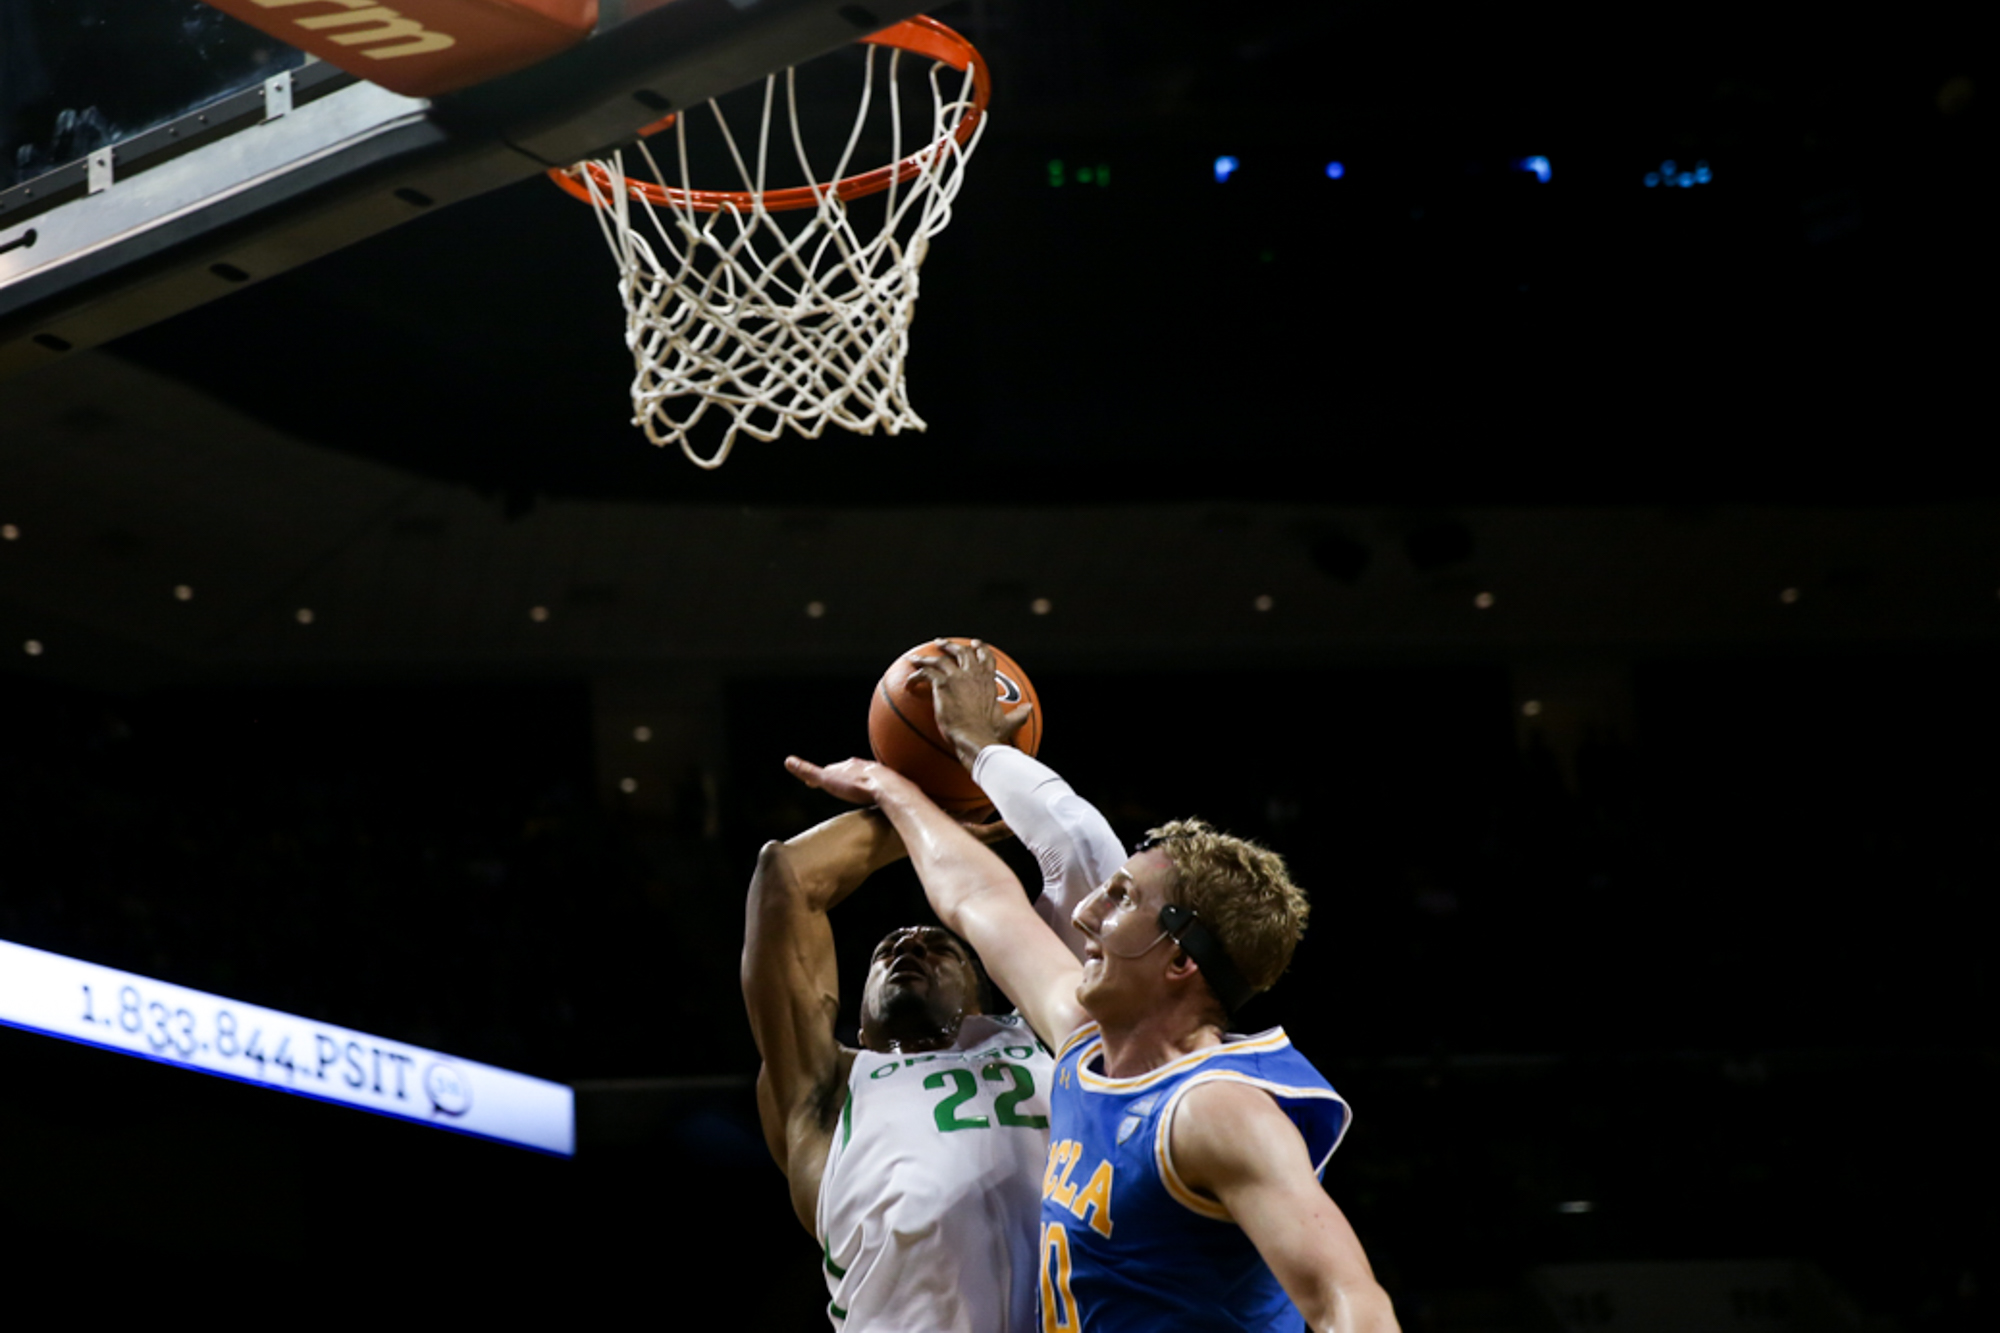 Forward Mikyle Mcintosh goes in for a shot. Oregon basketball plays the UCLA Bruins at Matthew Knight Arena in Eugene, Ore. on Jan. 20, 2018. (Natalie Waitt-Gibson/Emerald)